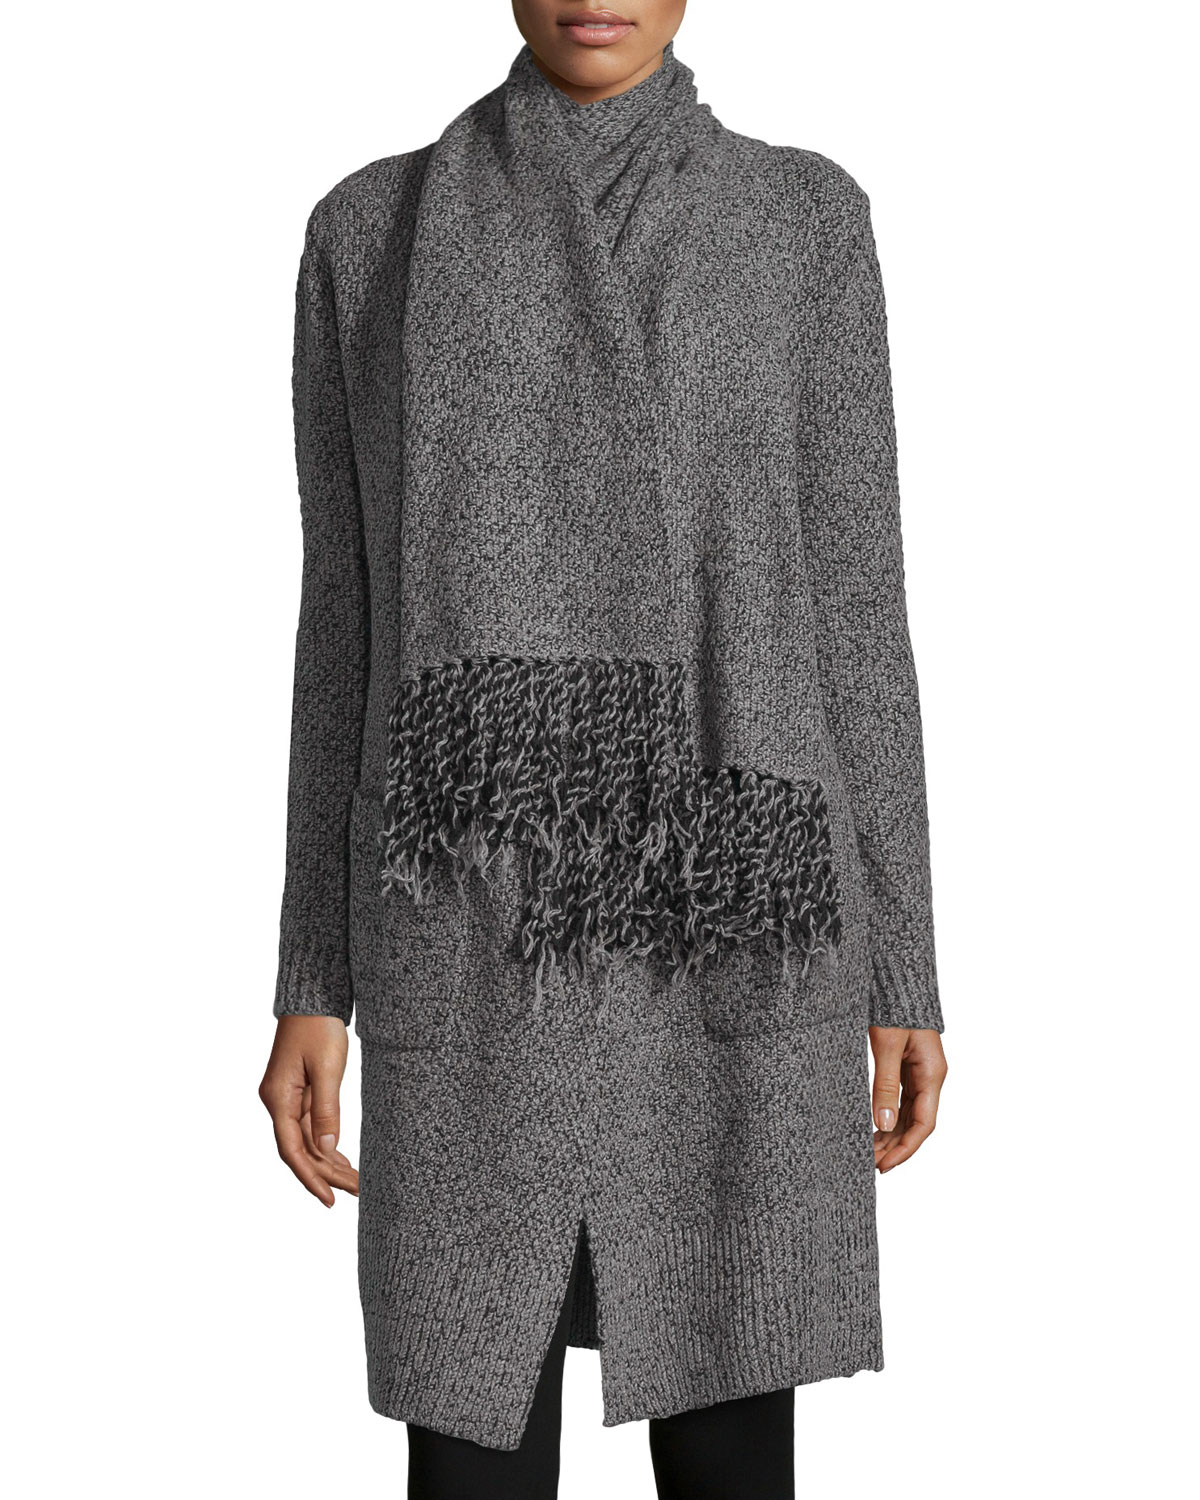 thakoon addition scarf tie knit cardigan in gray lyst